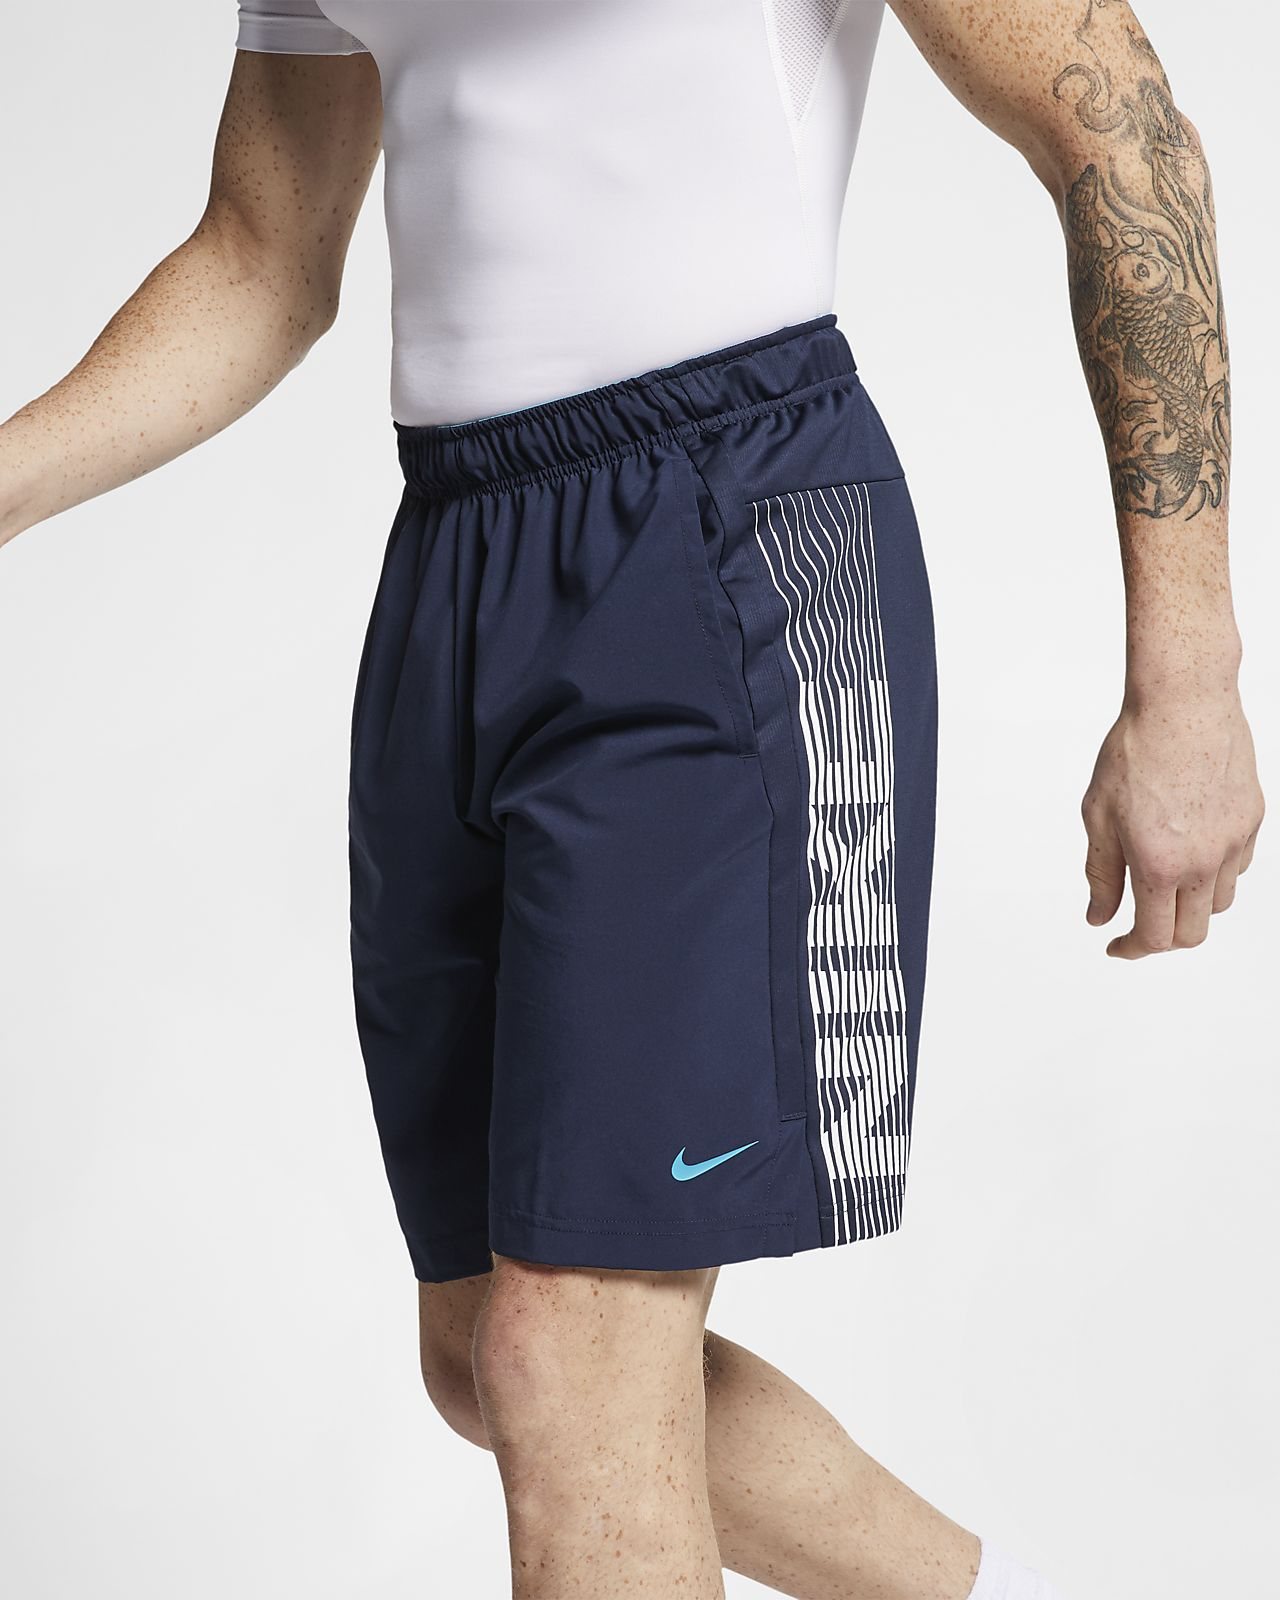 Nike Dri-FIT Men's Training Shorts